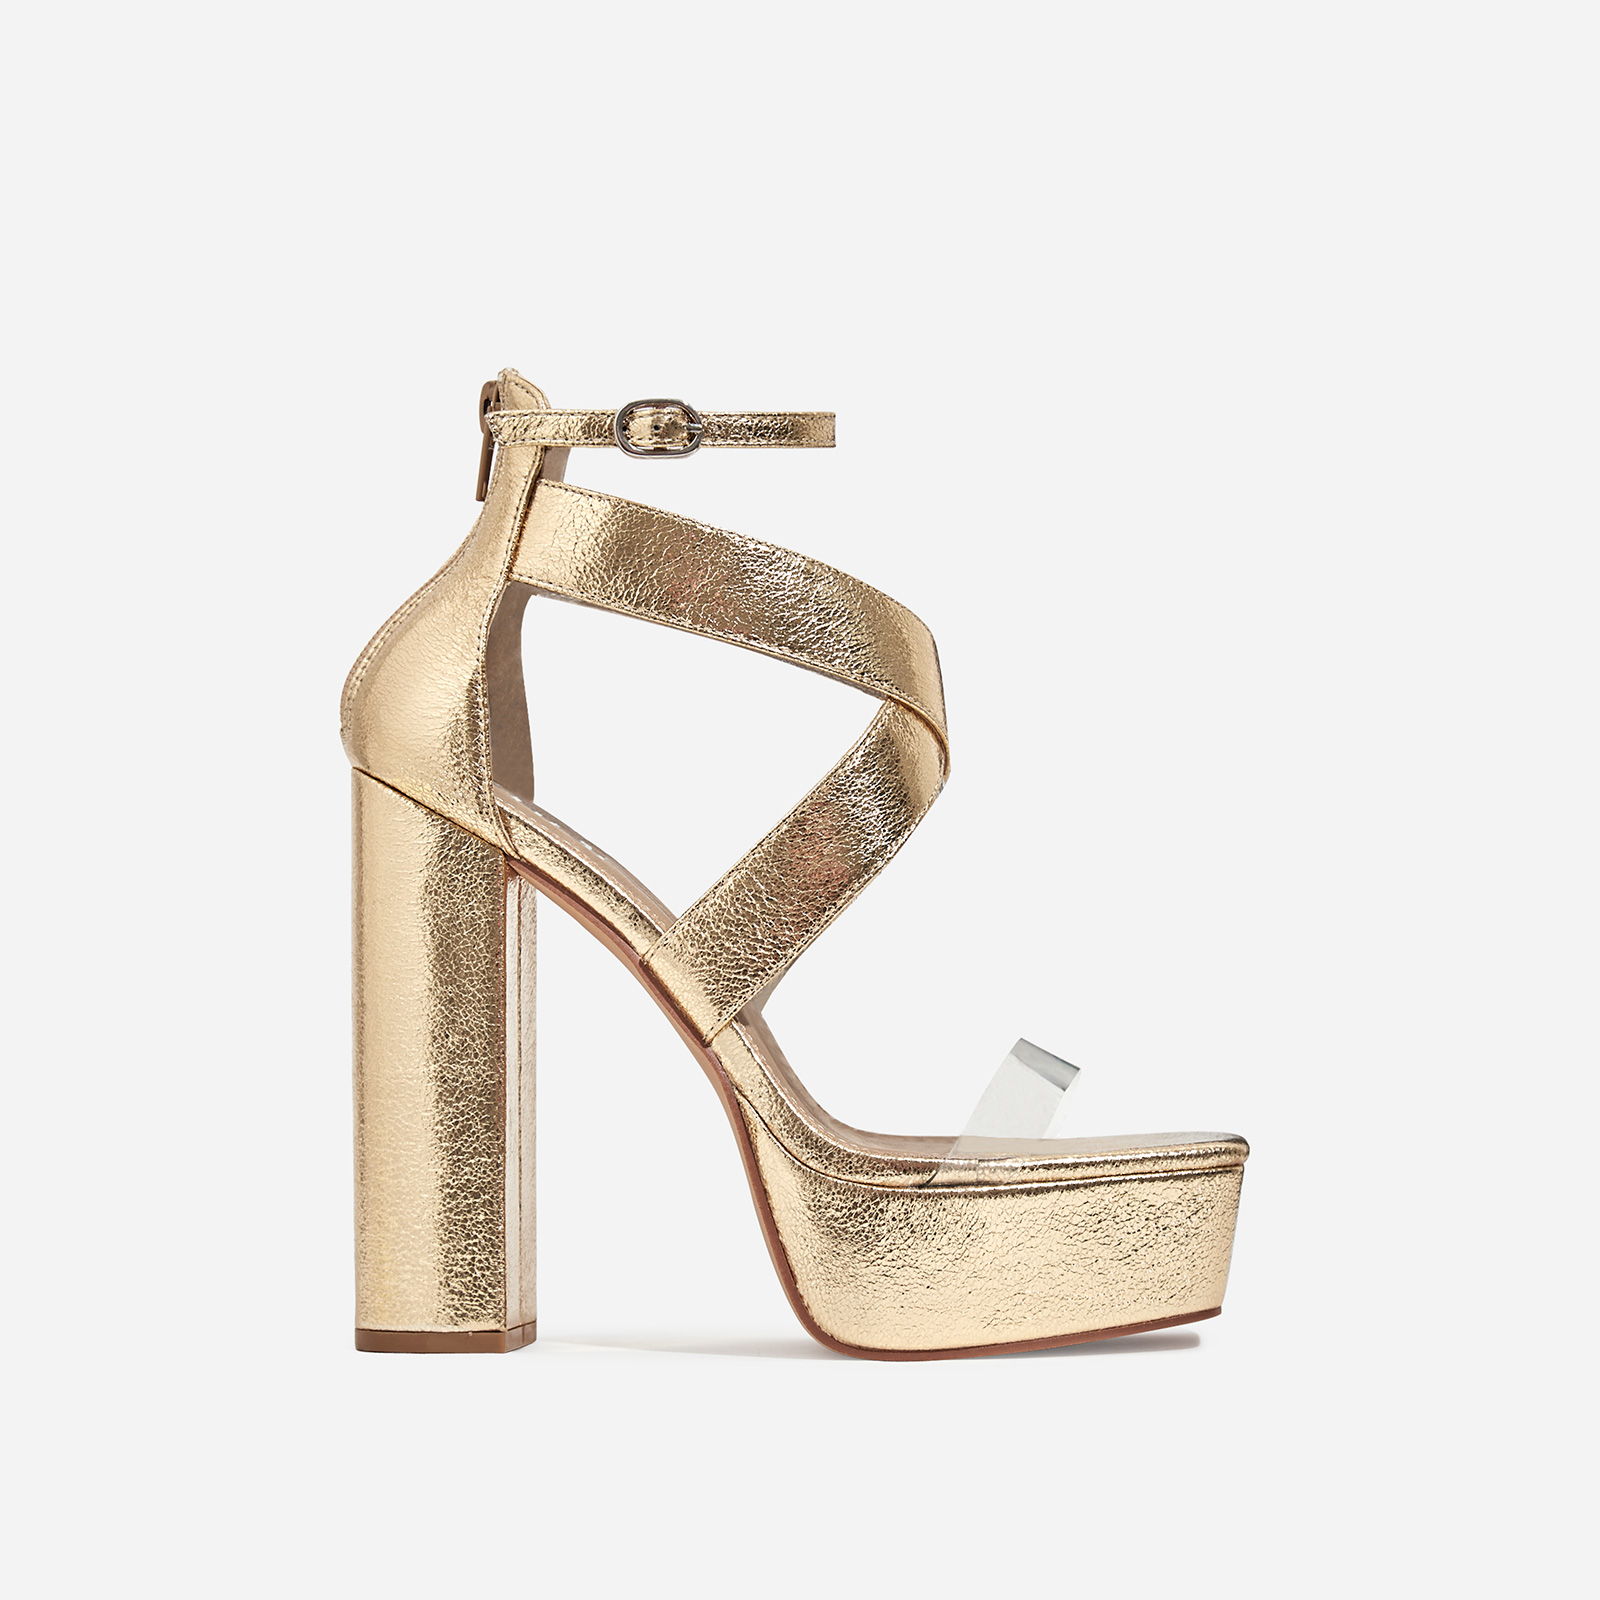 Nirvana Platform Square Toe Clear Perspex Heel In Gold Faux Leather